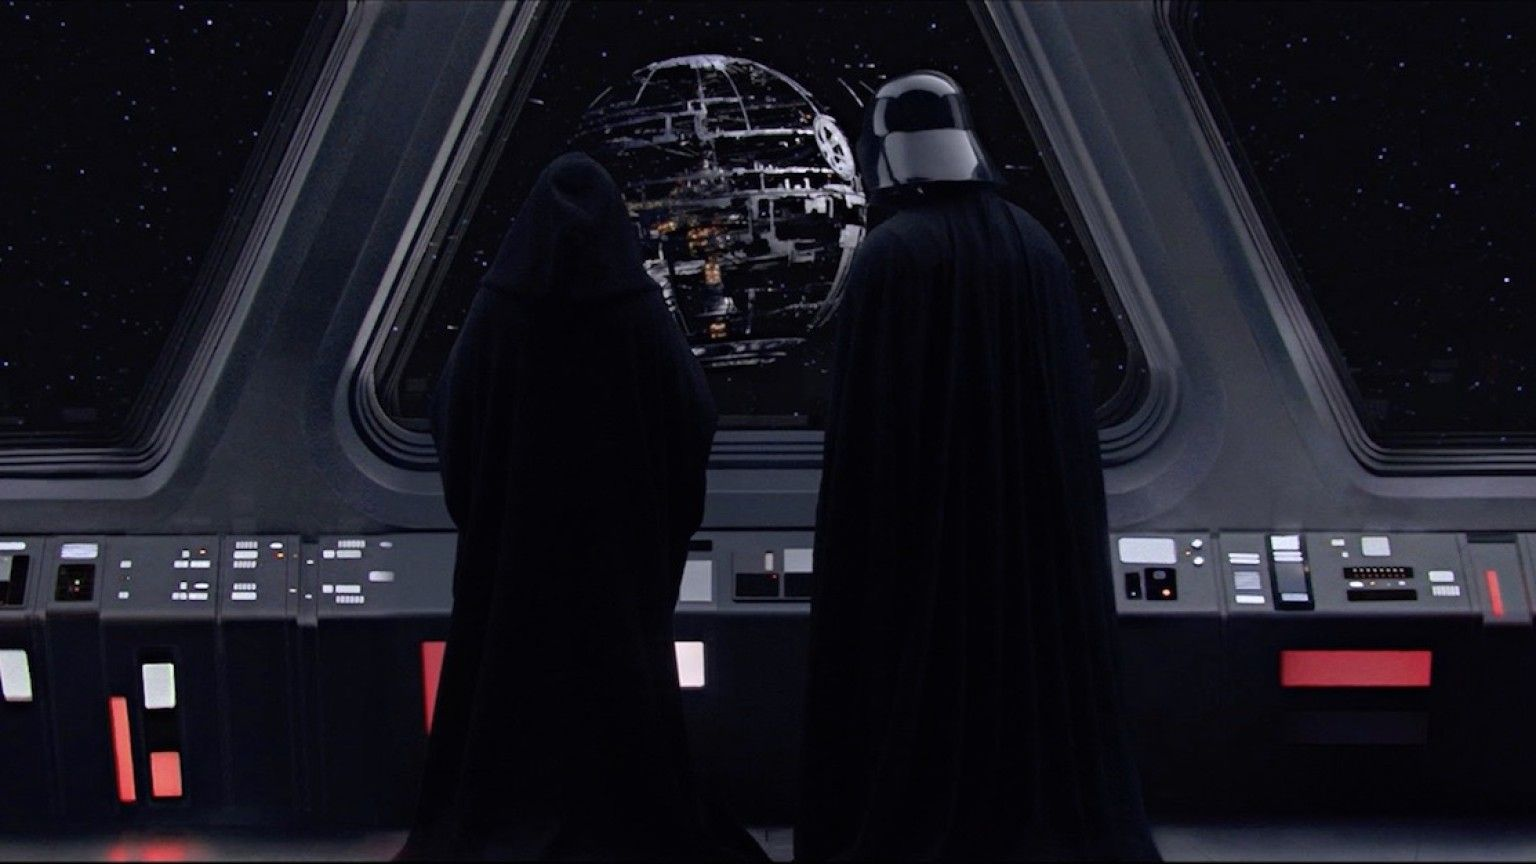 Resultado de imagem para star wars episode 3 darth vader and palpatine death star